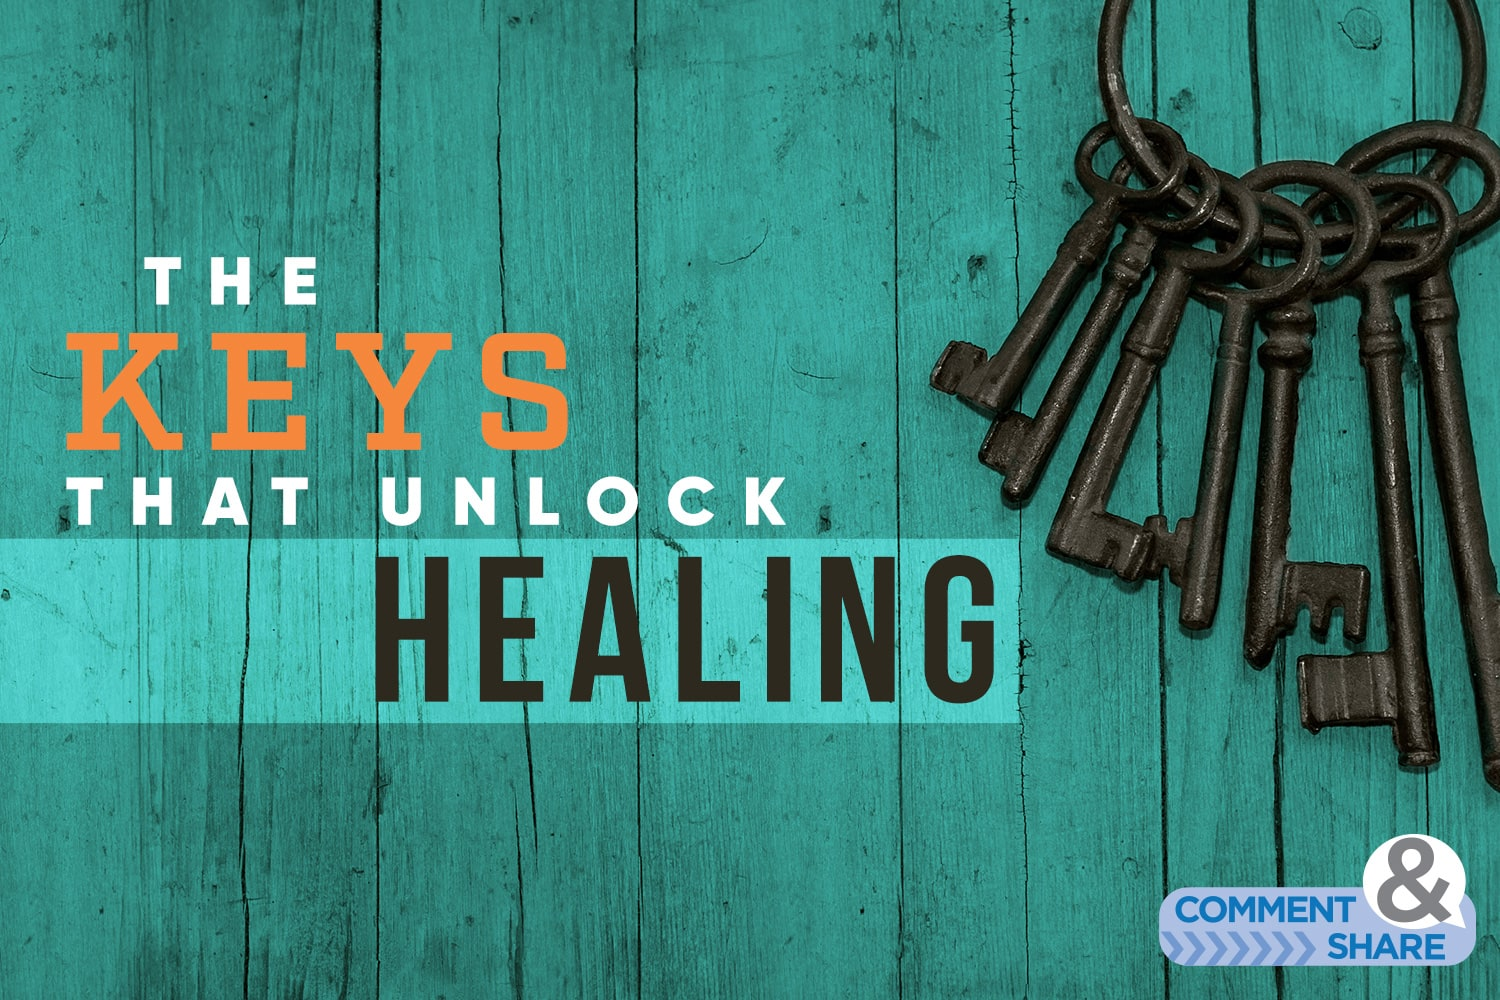 Keys that unlock healing